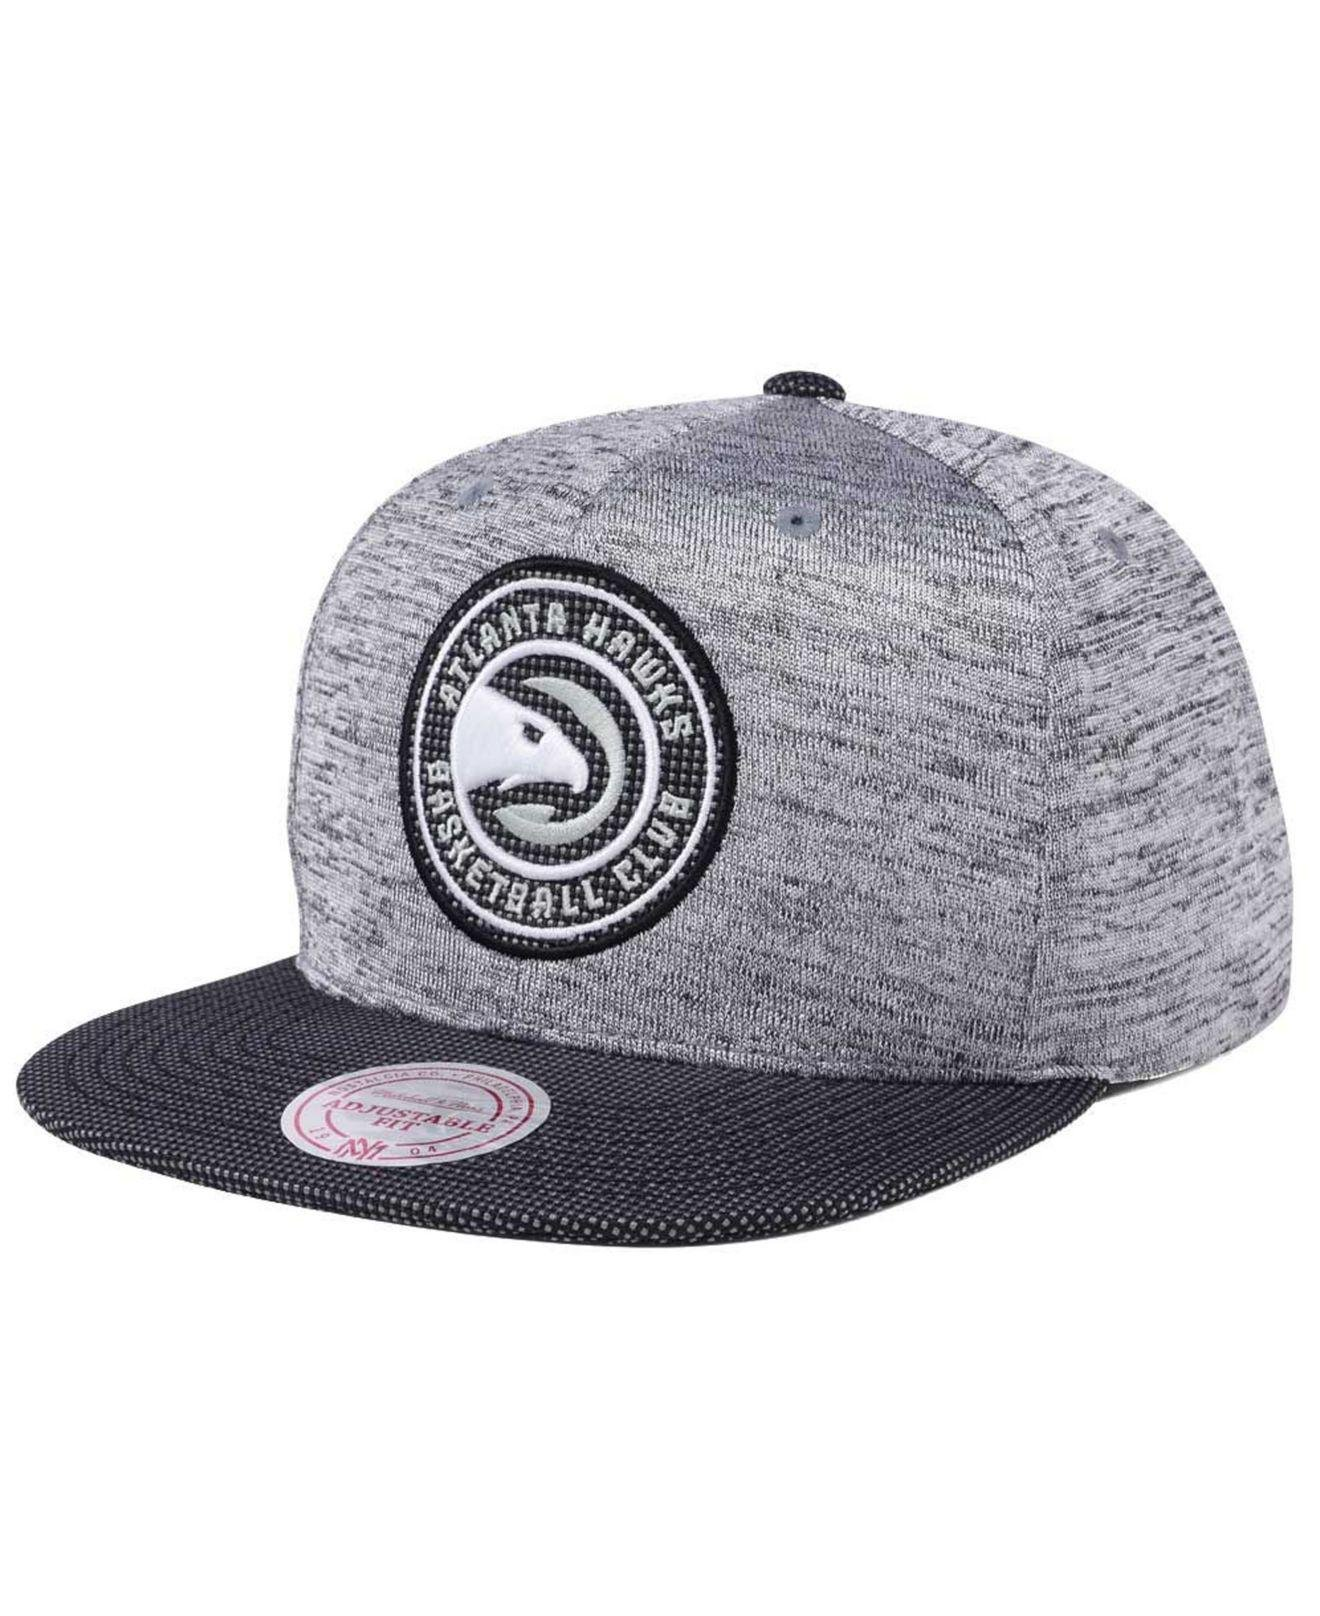 official photos 697d1 b8ff6 Mitchell   Ness. Women s Gray Space Knit Snapback Cap